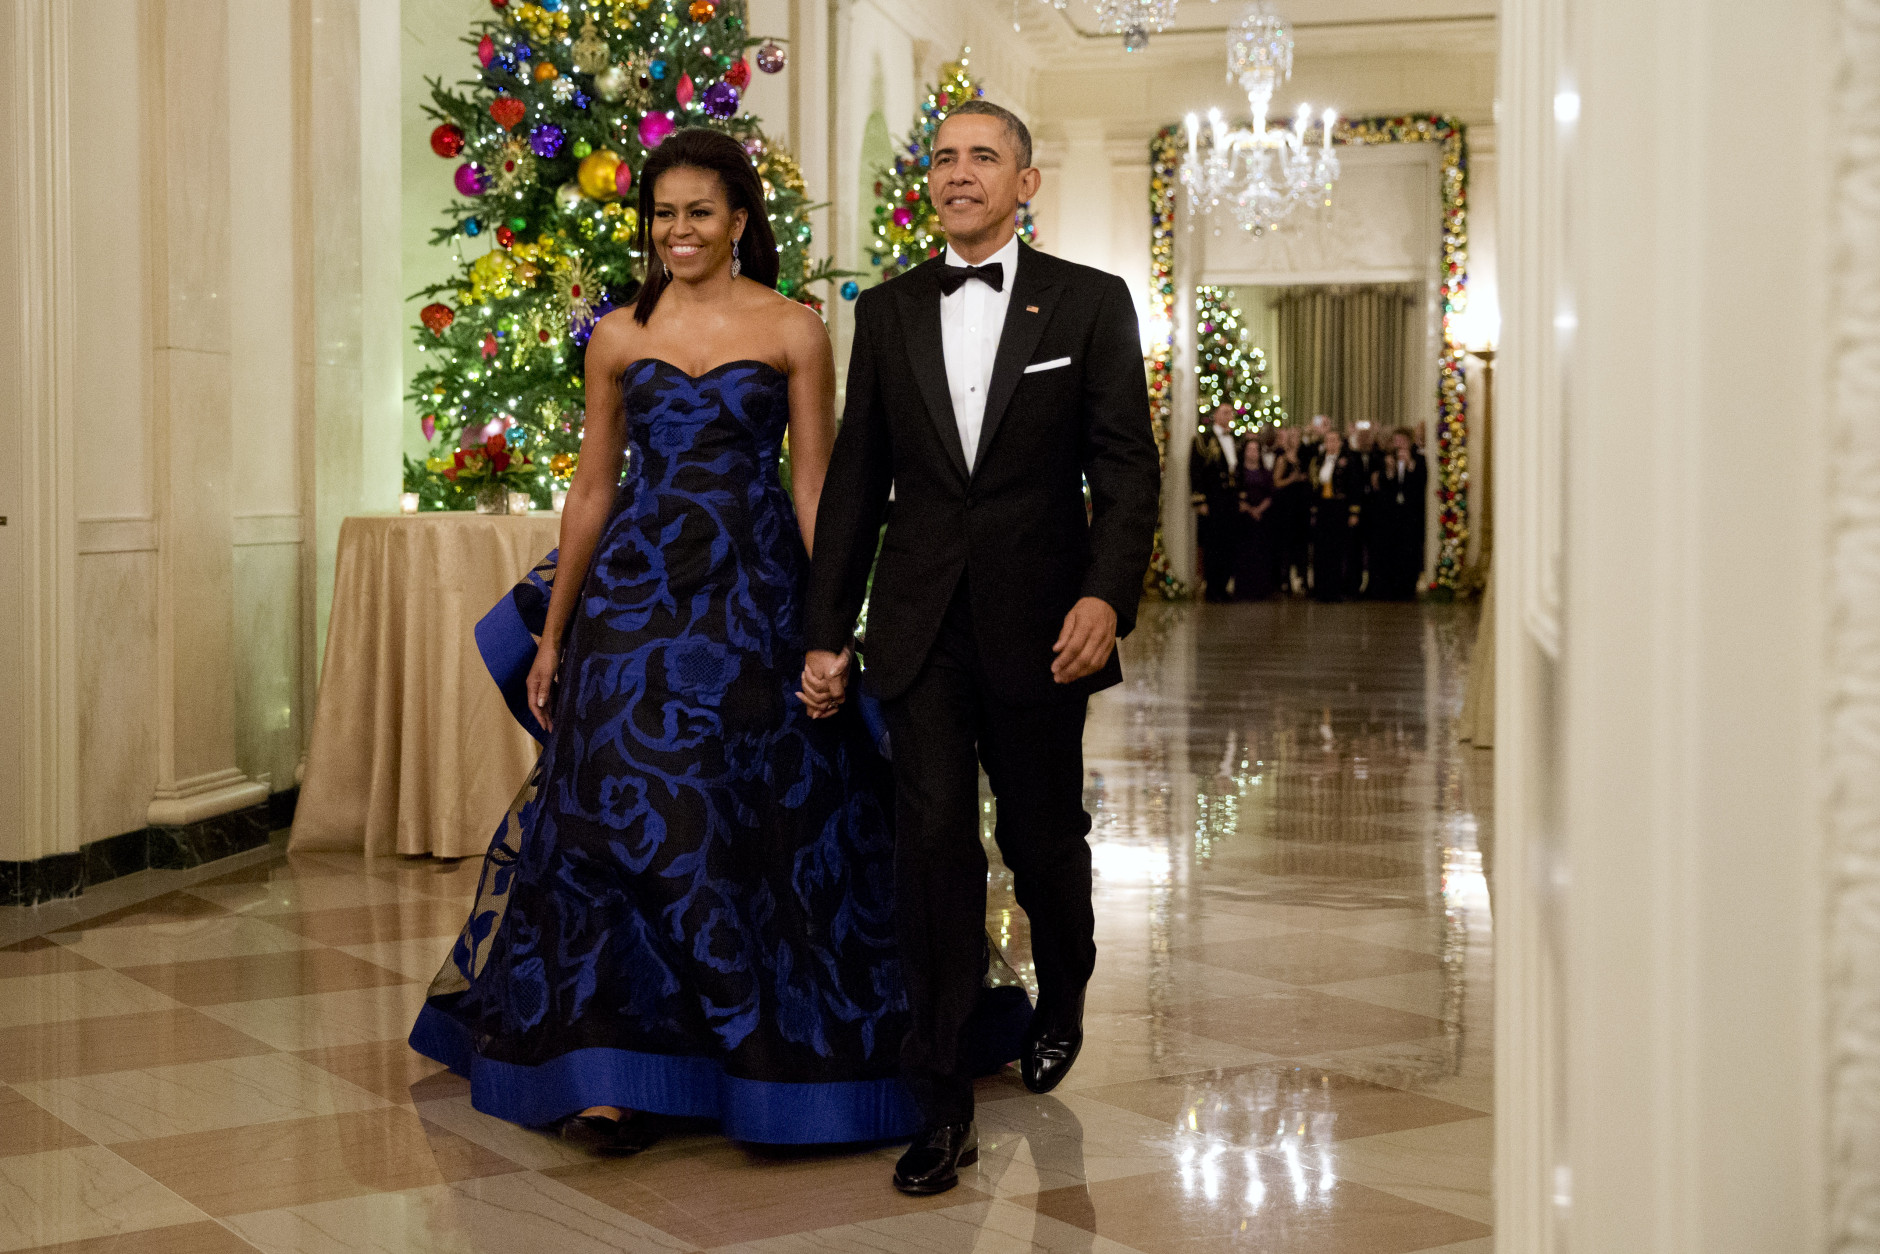 President Barack Obama and first lady Michelle Obama arrive at the 2015 Kennedy Center Honors reception in the East Room of the White House in Washington, Sunday, Dec. 6, 2015. (AP Photo/Jacquelyn Martin)